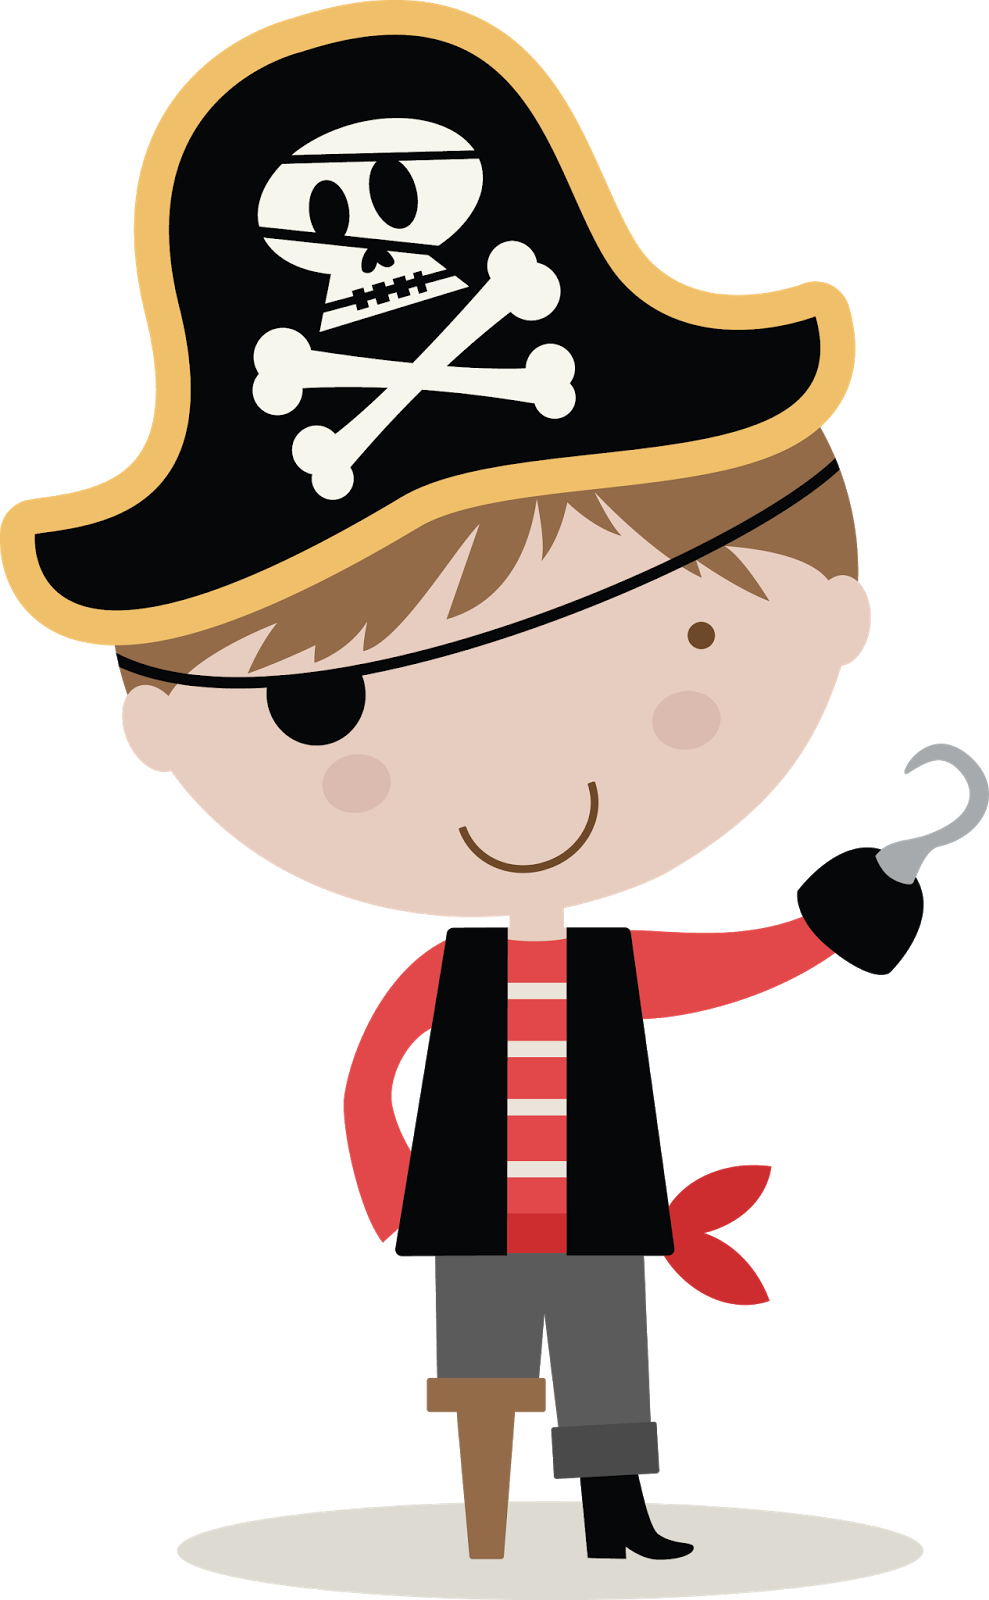 pirate png image purepng free transparent cc0 png image library